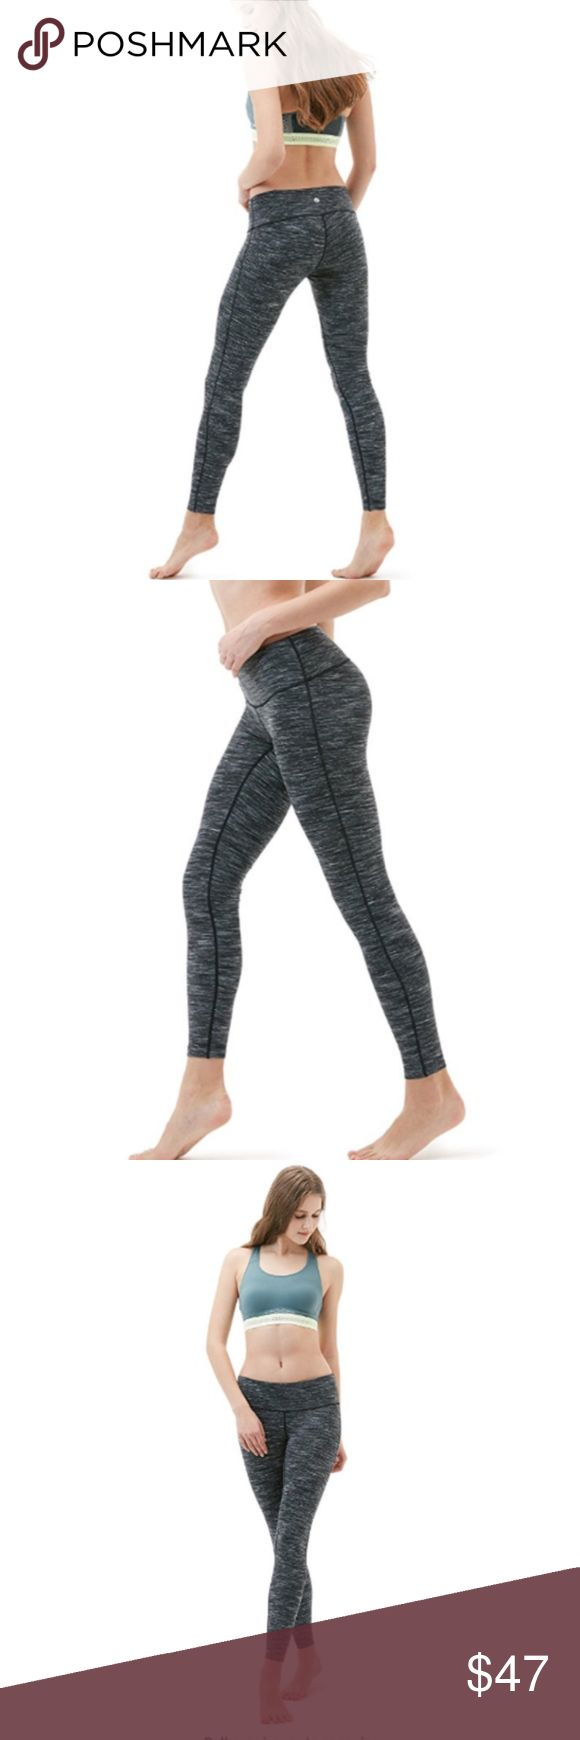 NWT Yoga Crossfit Workout Legging w Hidden Pocket 87% polyester  Buy with confidence Premium Quality Yoga Pants at a Bargain Price Ultra-Stretch Fit (Enough thickness with breath-ability: No See through) that slims, conforms, and contours with each pose and movement. Secure Hidden Pocket that holds simple objects such as keys or credit cards   SHIPPING: Please allow 2-3 Business days exclude holidays and weekend.  Please  LIKE & SHARE! Thanks Pants Leggings